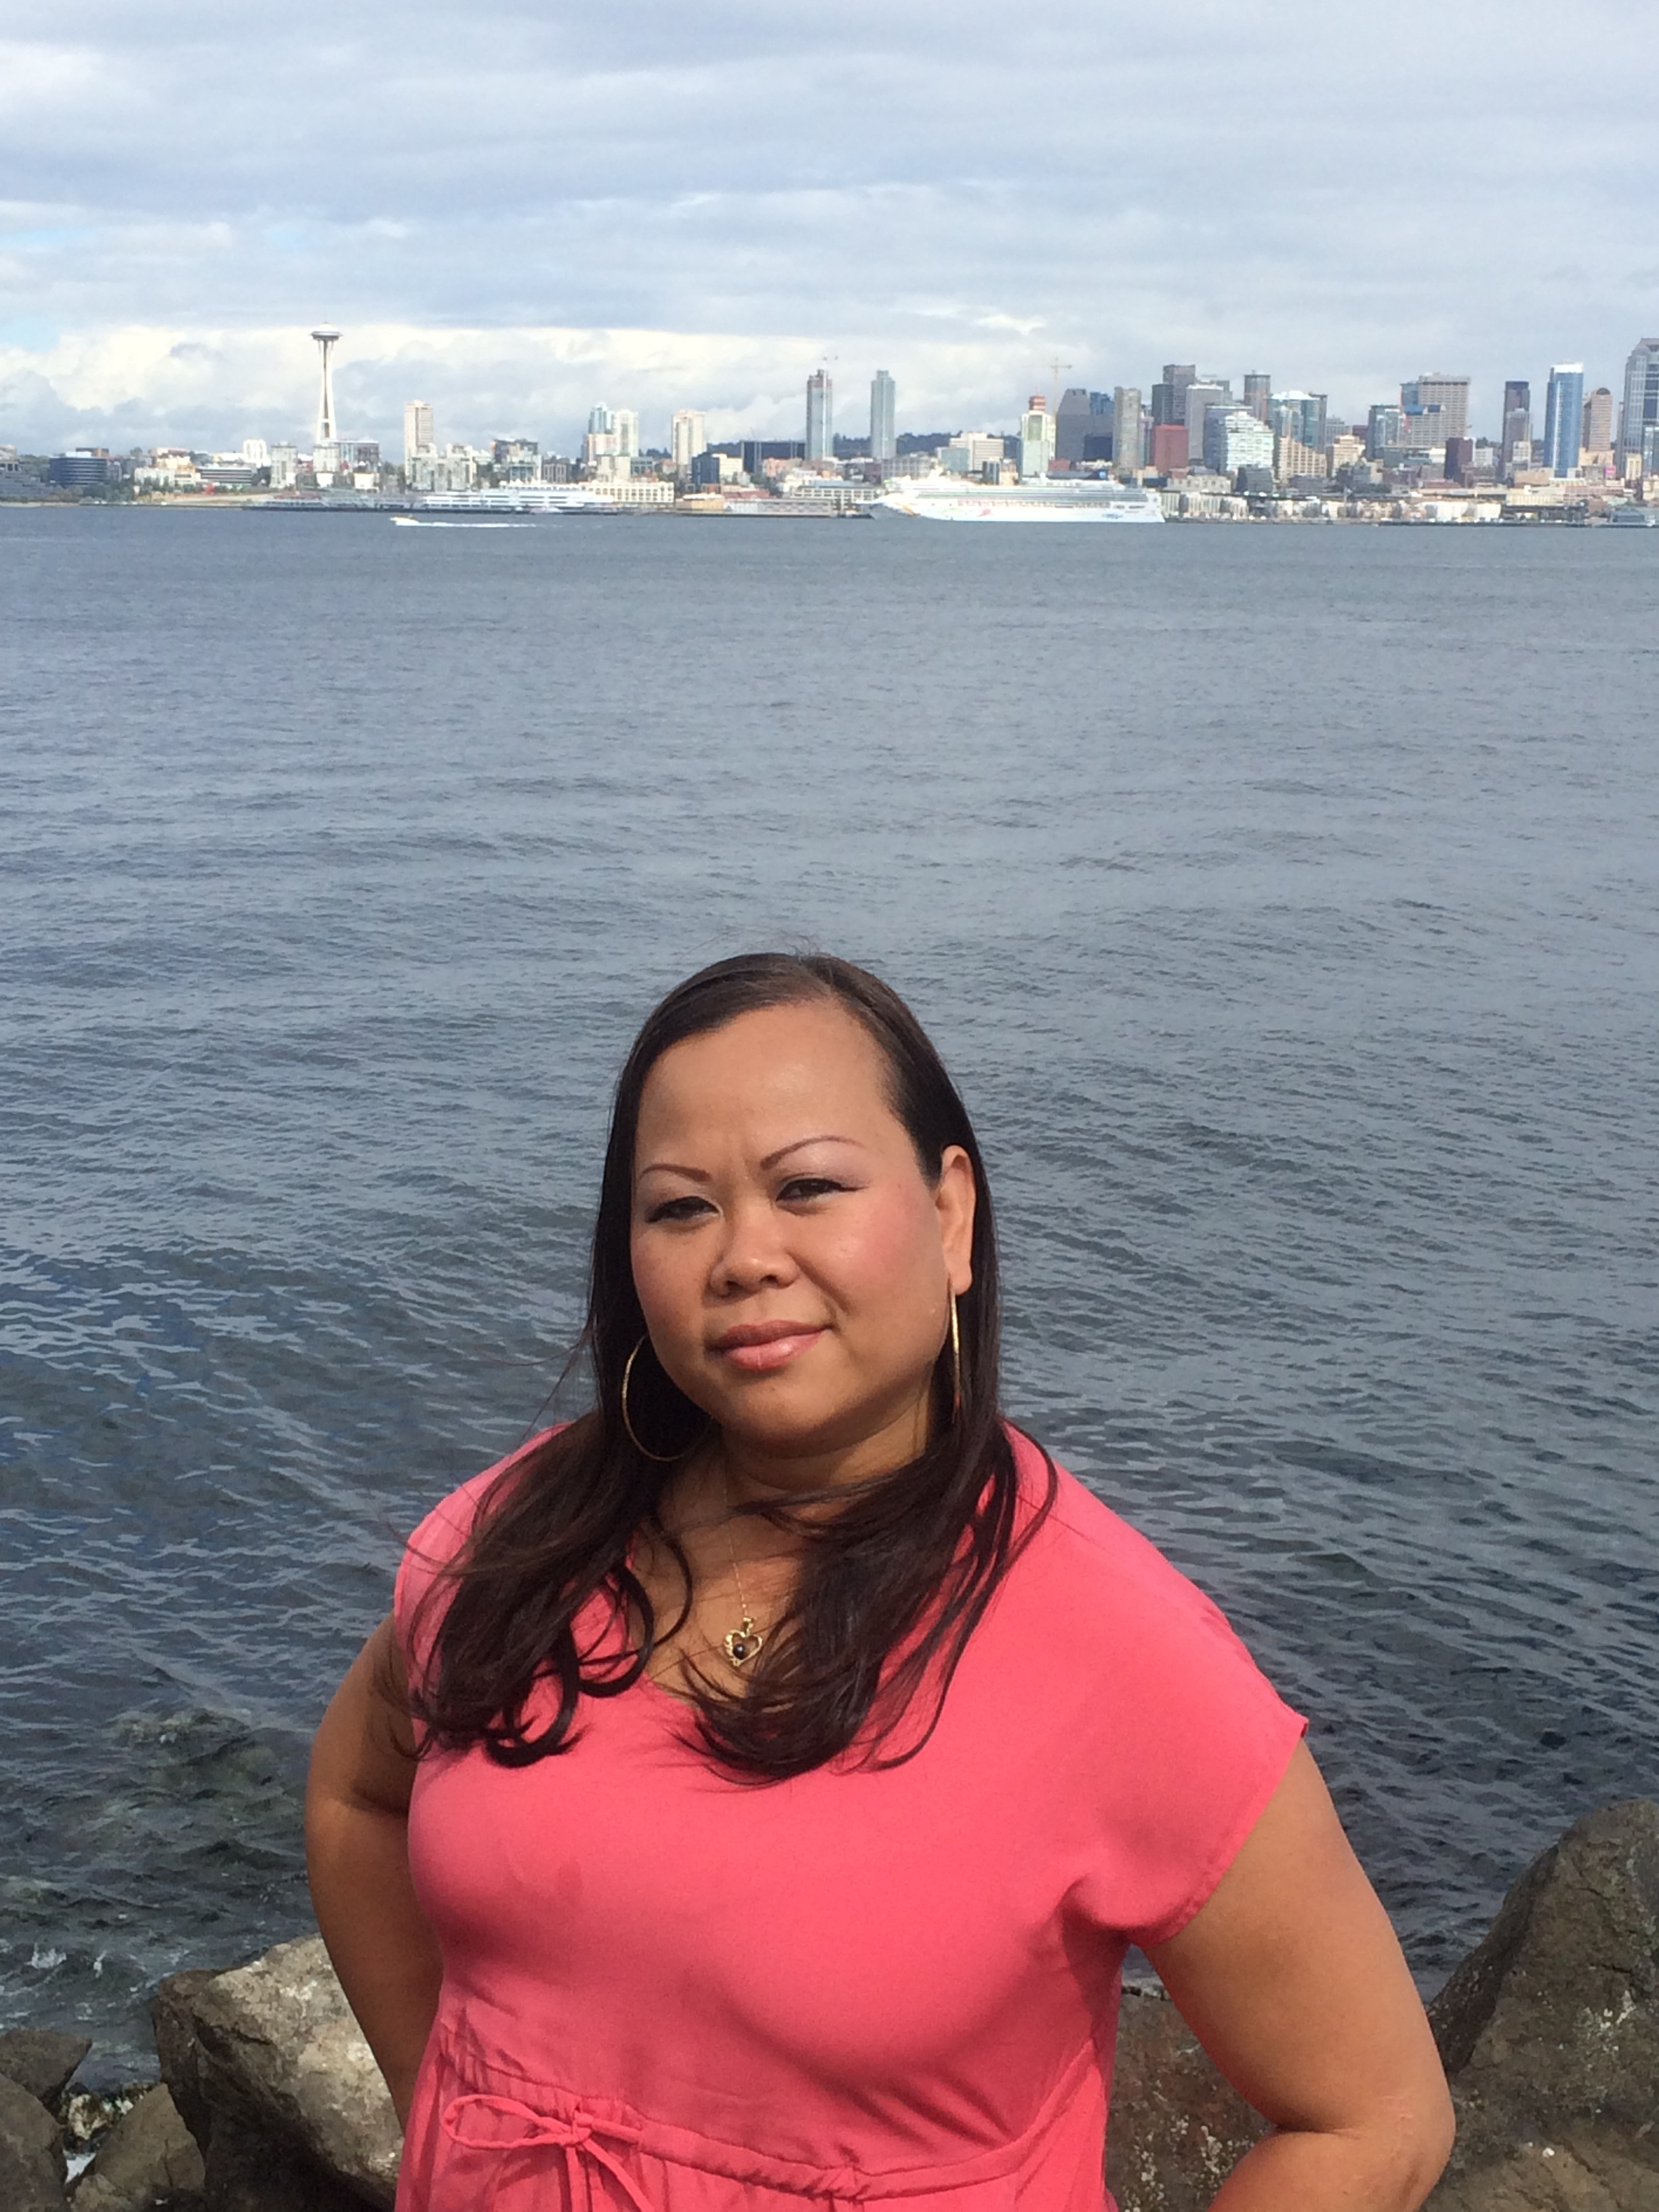 about re max and our real estate buyer and seller services in seattle she is very detail oriented and understands the real estate process from start to finish her guidance and tutelage